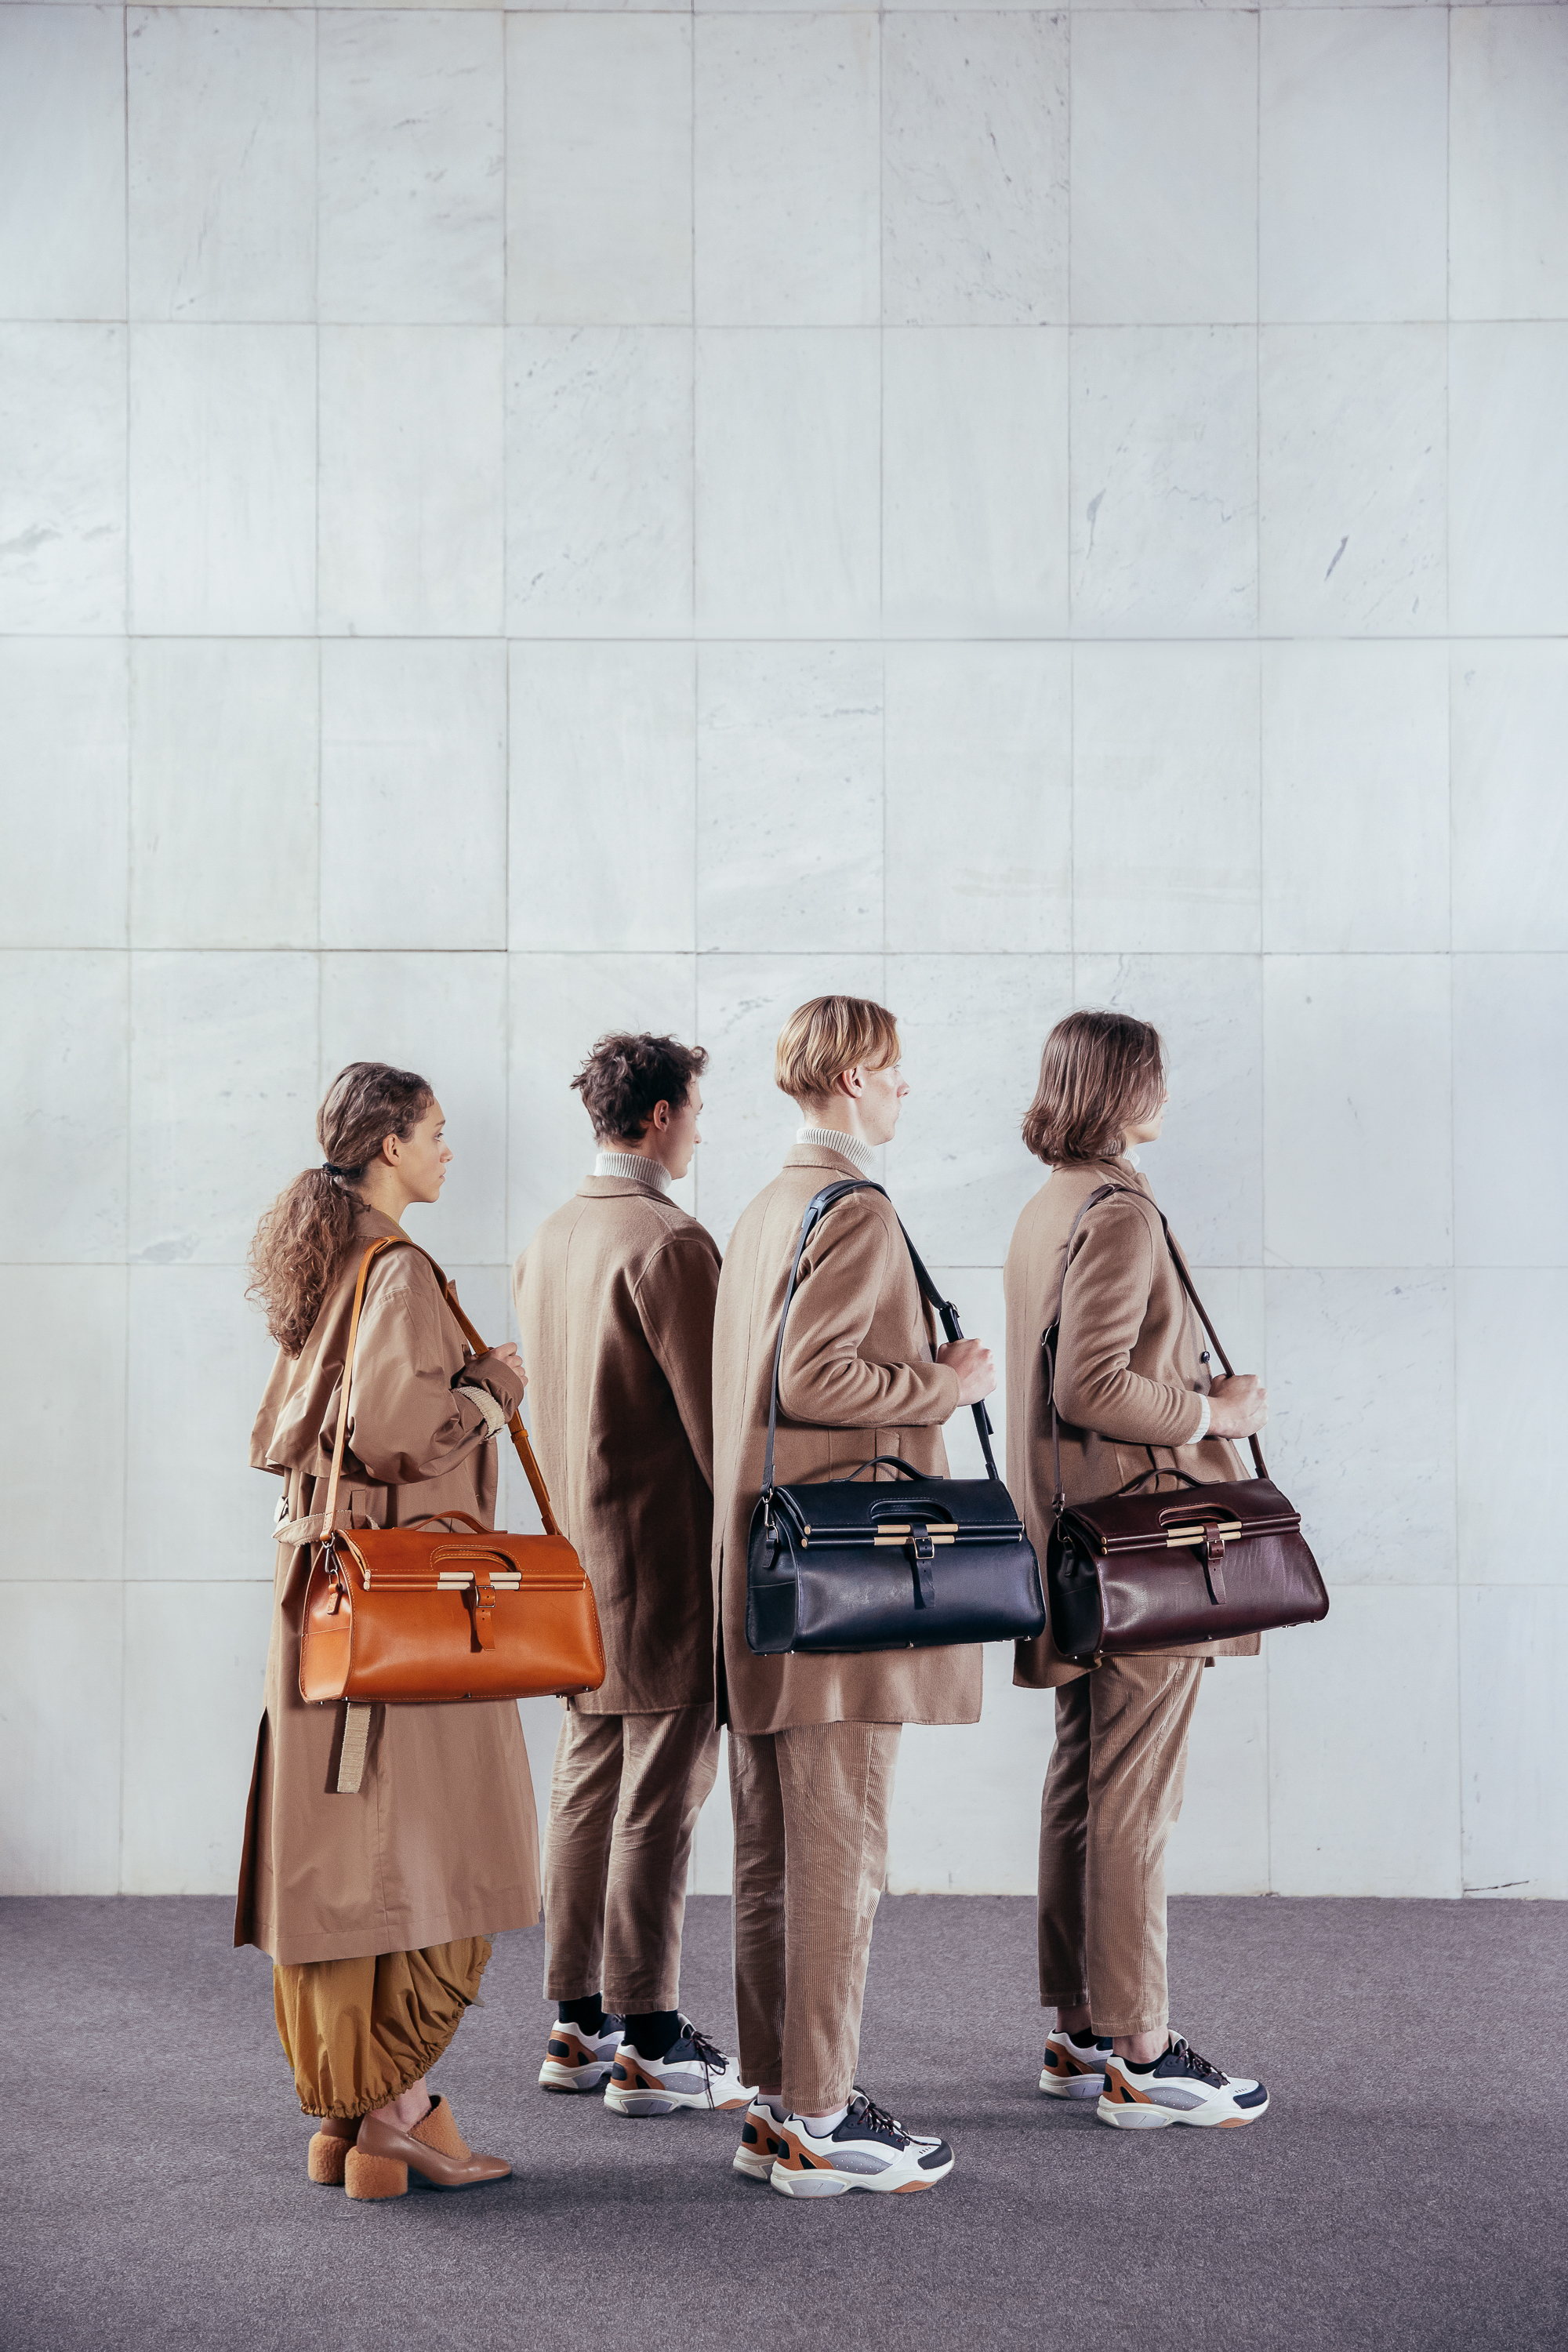 Weekender Tote Bags made entirely by hand, in vegetable tanned full grain leather, saddle stitched, pictured on men and women